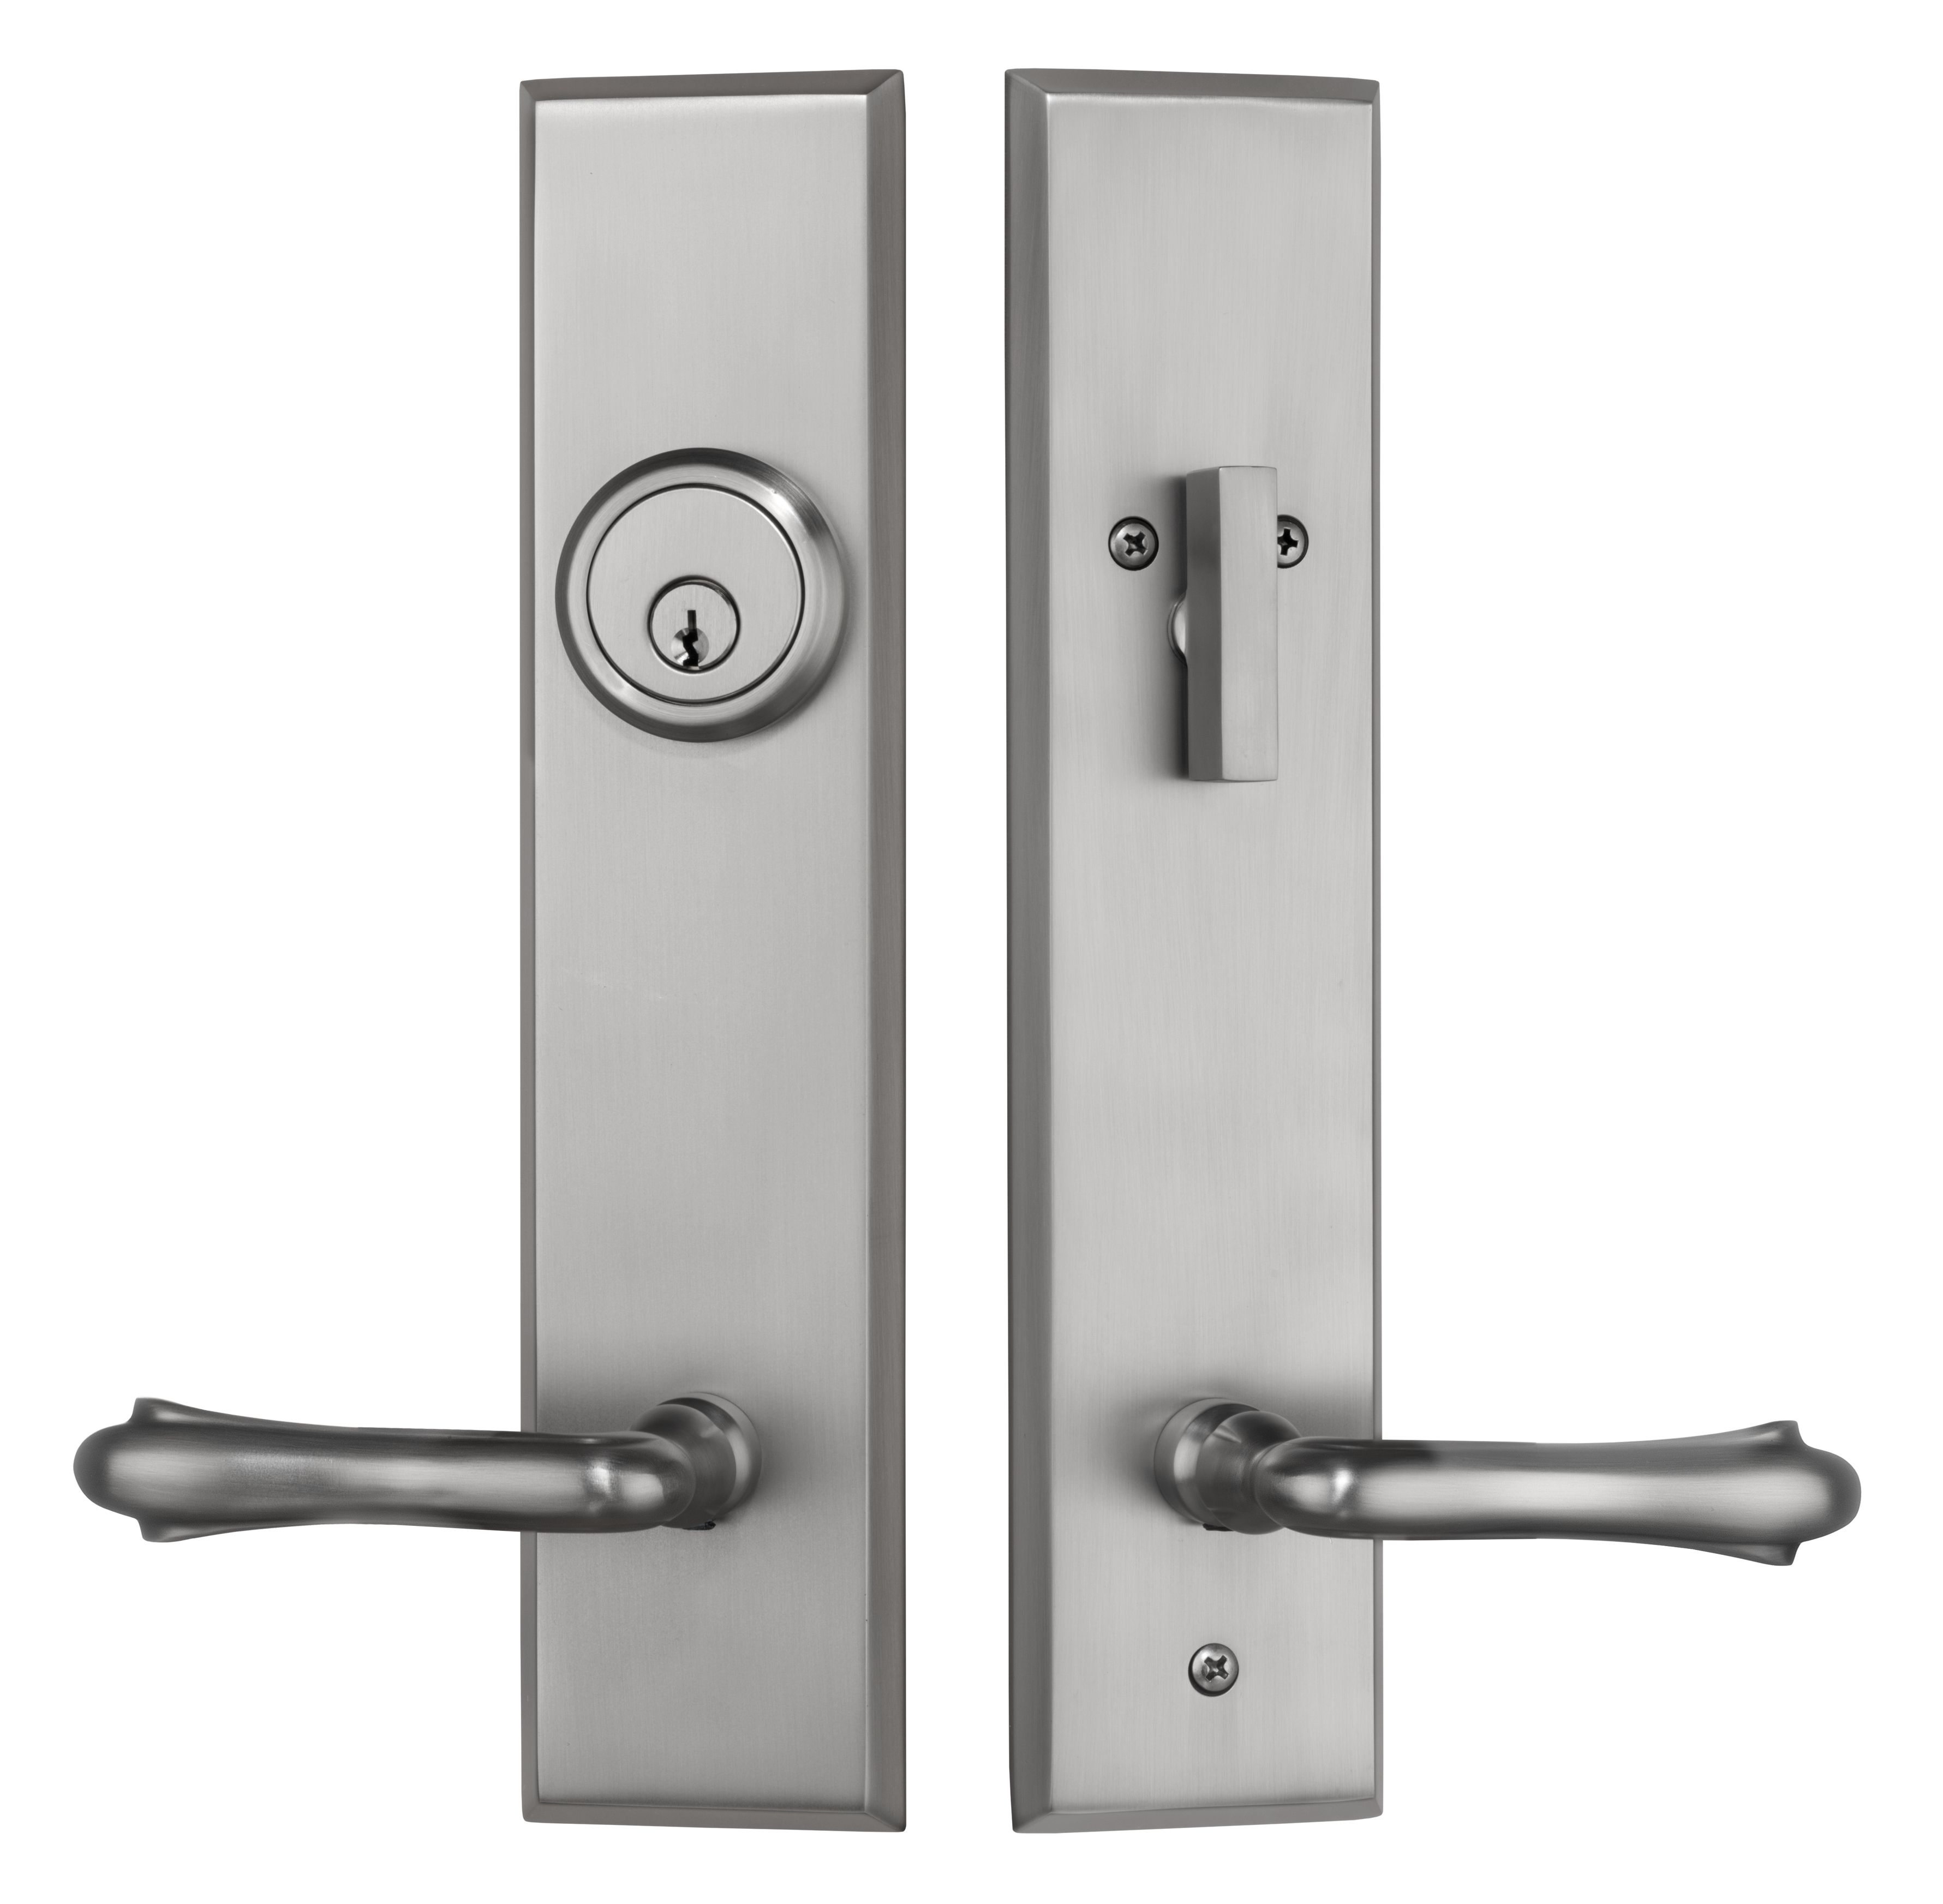 Rockwell Verano Entry Door Handle Set With Bourne Lever In Brushed Nickel Finish Rockwell Security Door Handles Modern Door Handles Single Cylinder Deadbolt